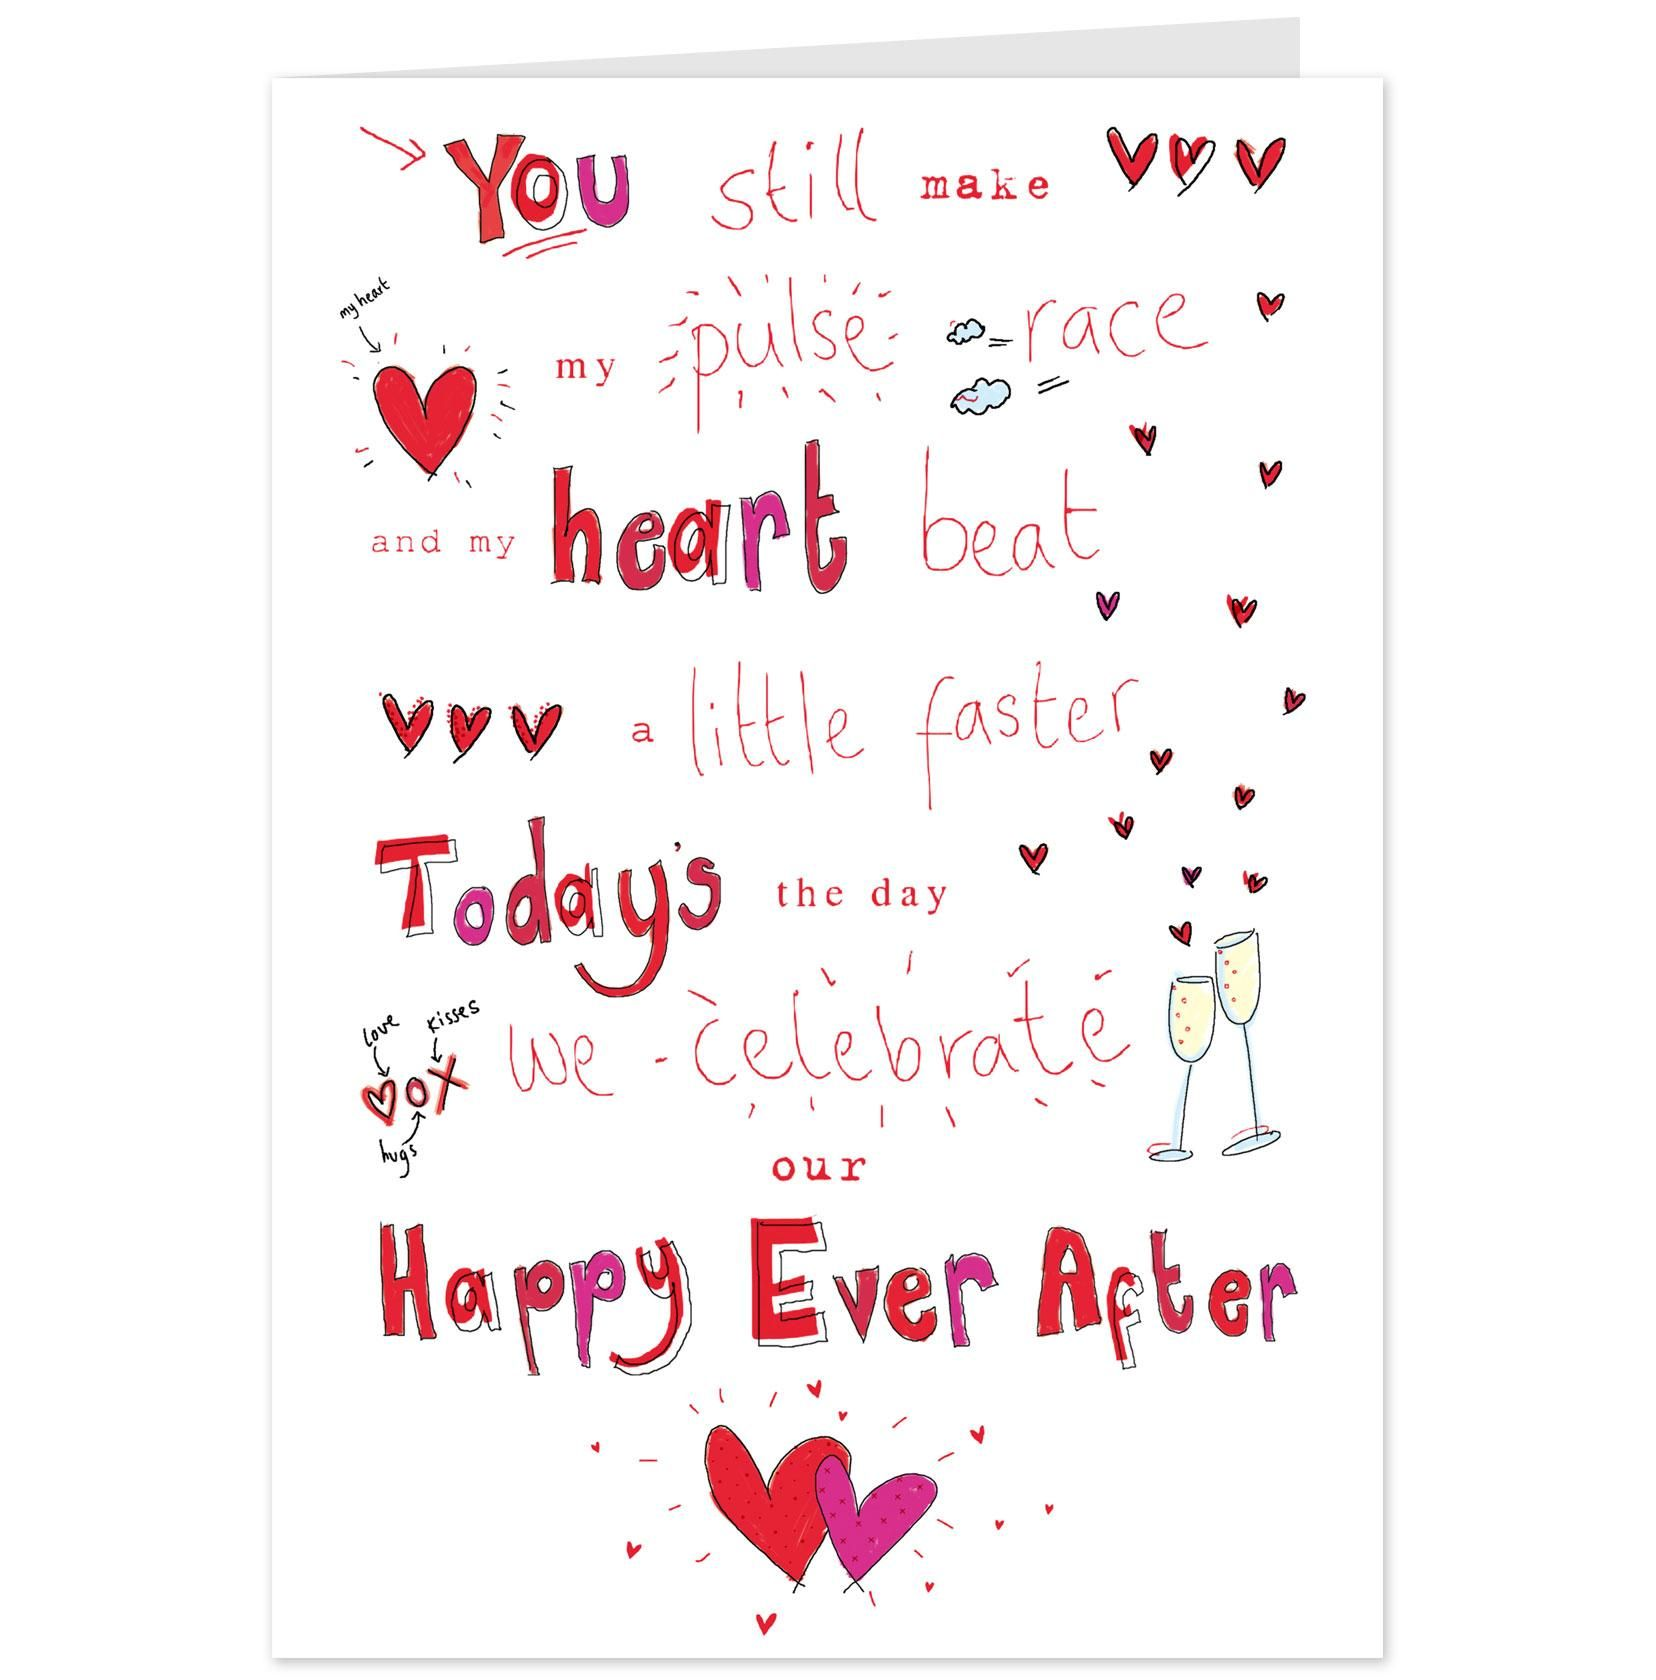 Happy Ever After Anniversary Card Hallmark UK  Free Printable Anniversary Cards For Parents